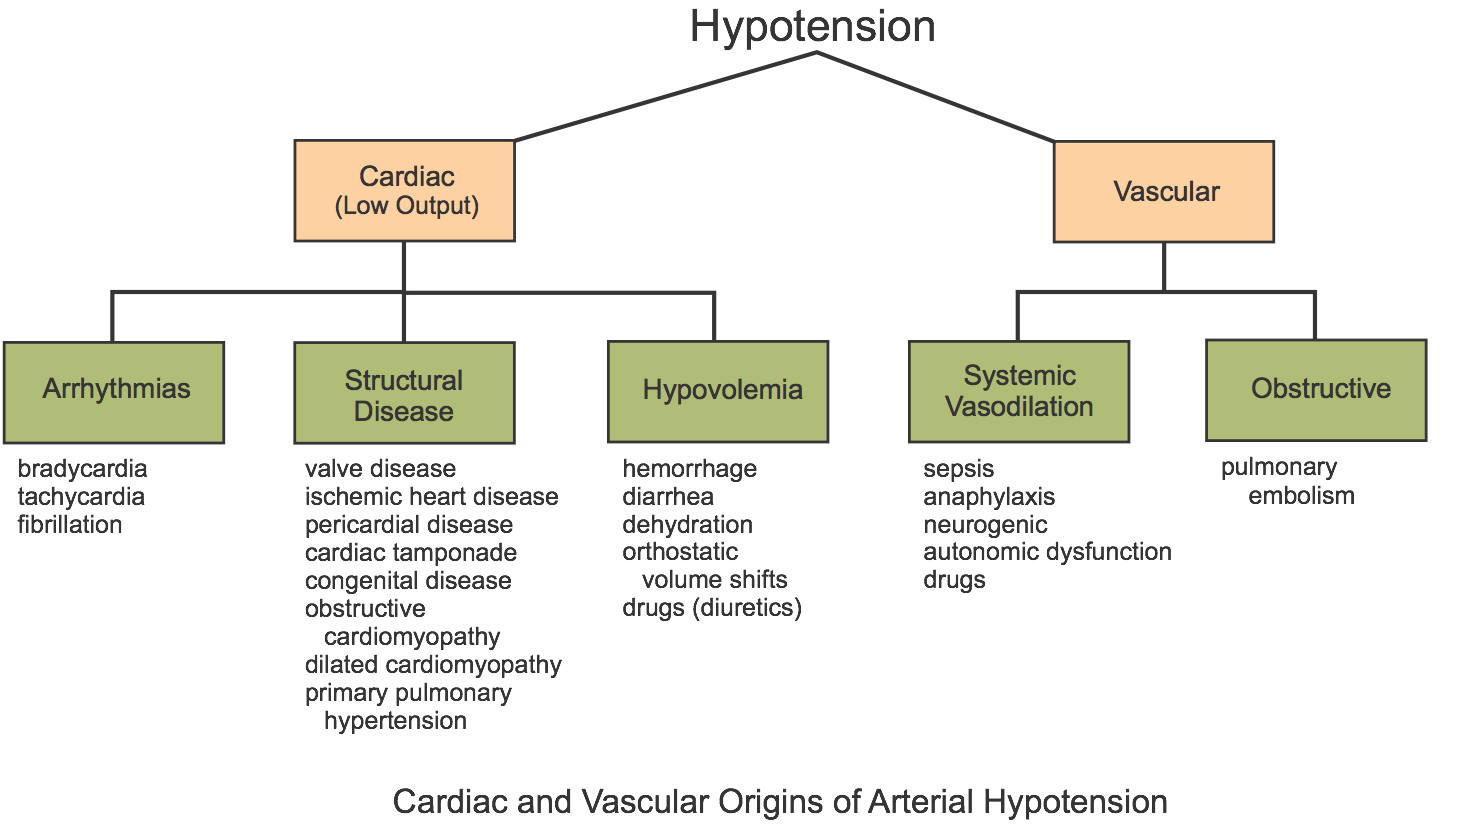 CV Physiology | Hypotension - Introduction